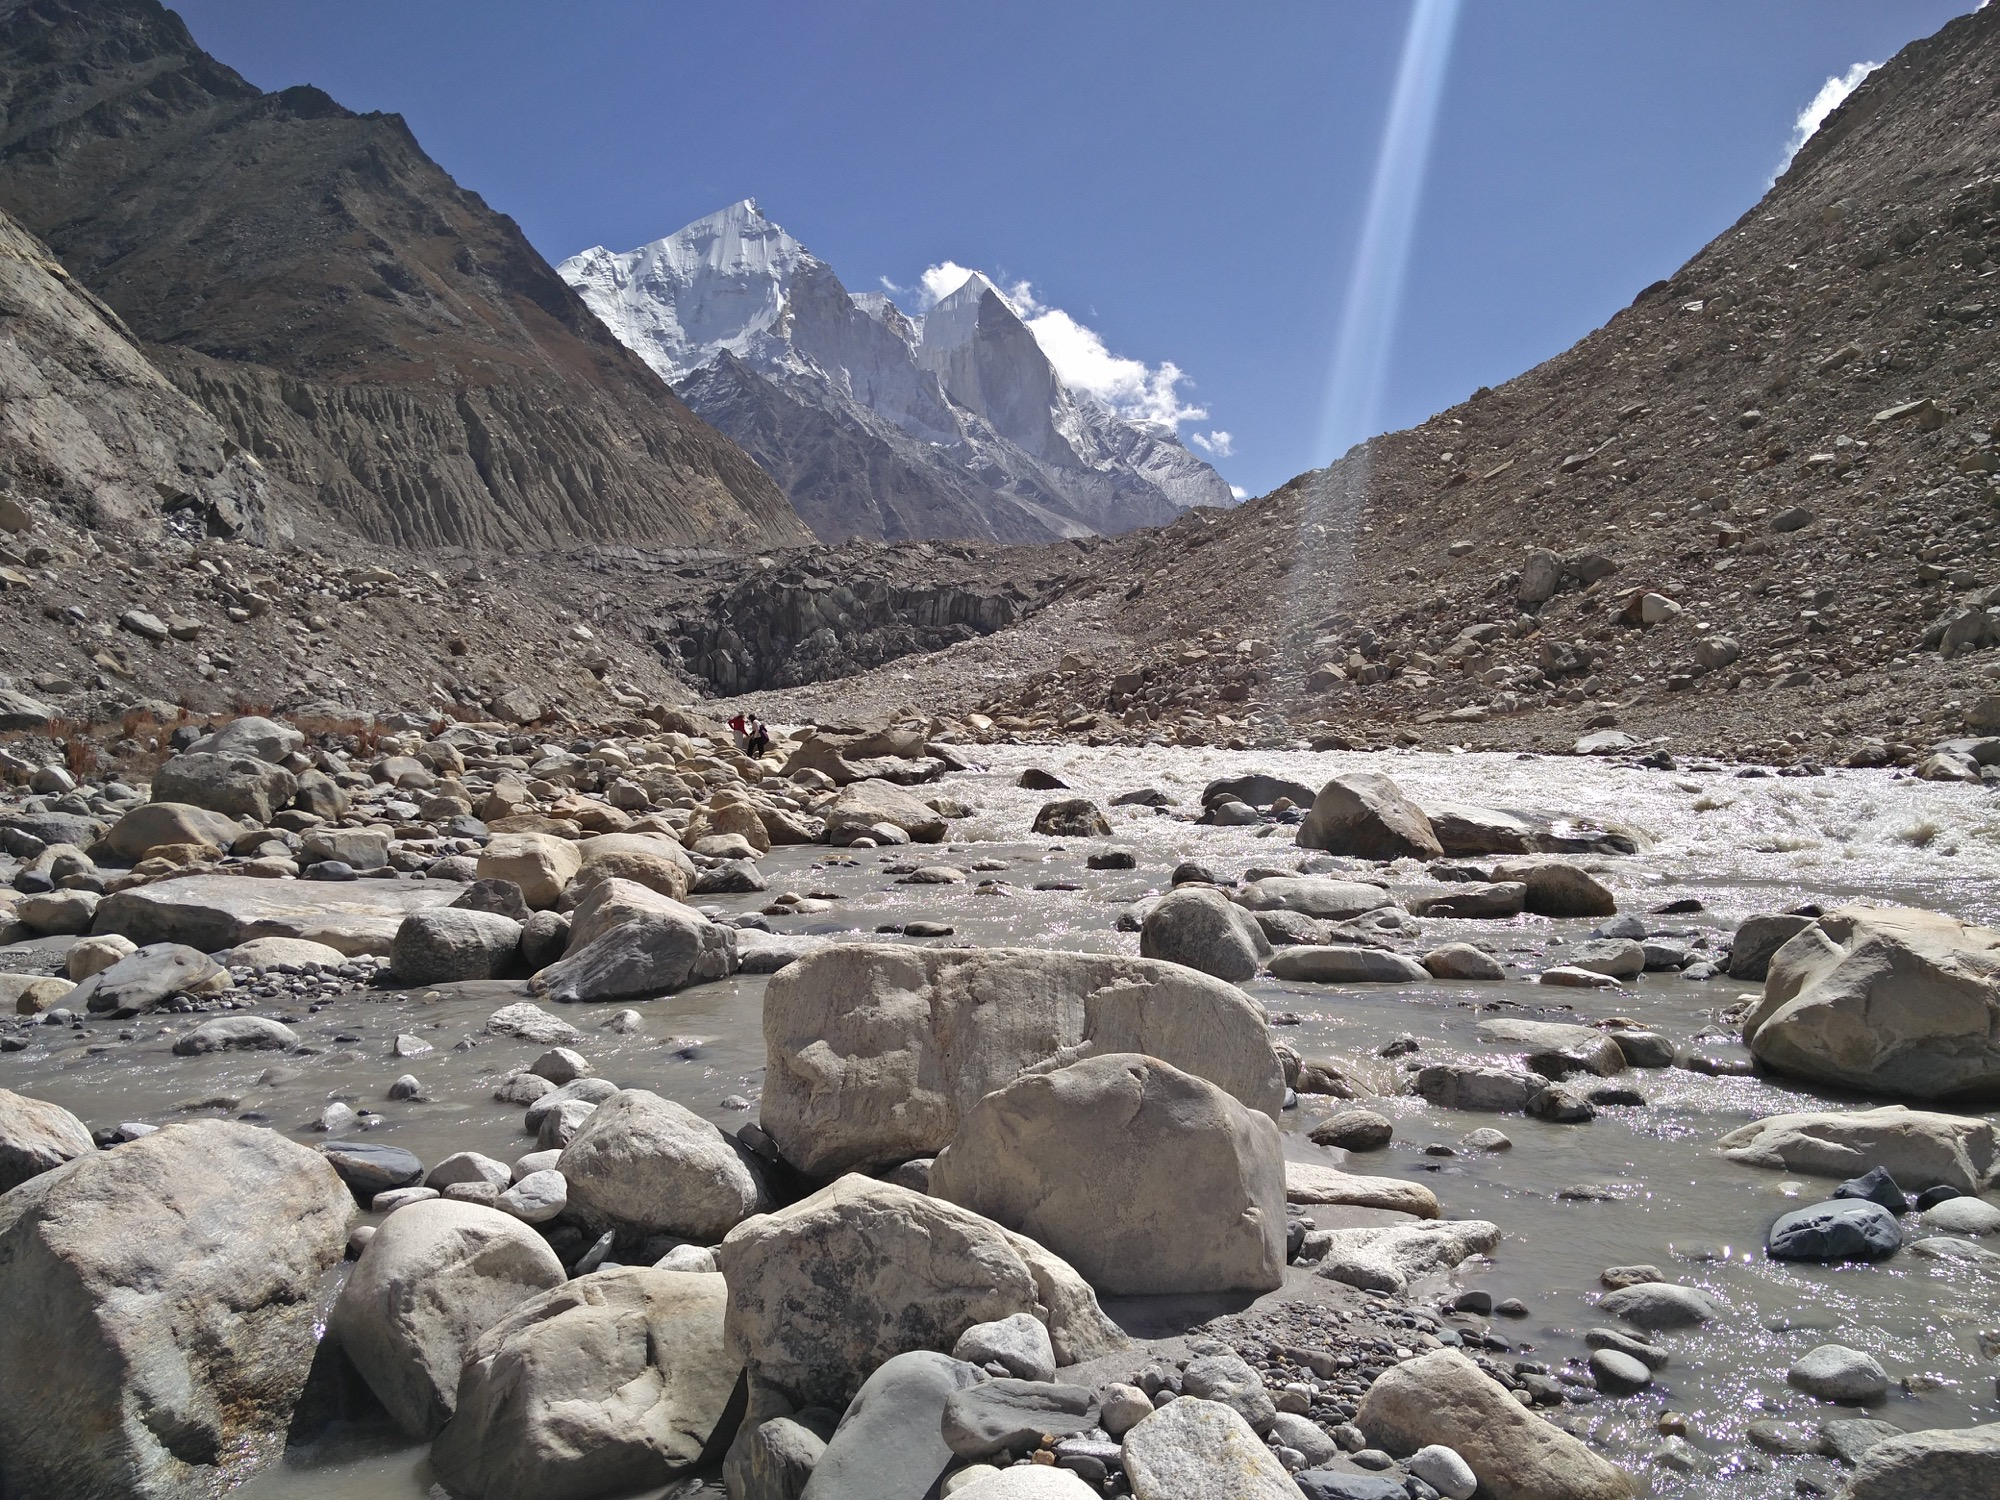 The team kicks off their sea expedition at Gaumukh where they can see the Himalayas. Photo © Shilpika Gautam